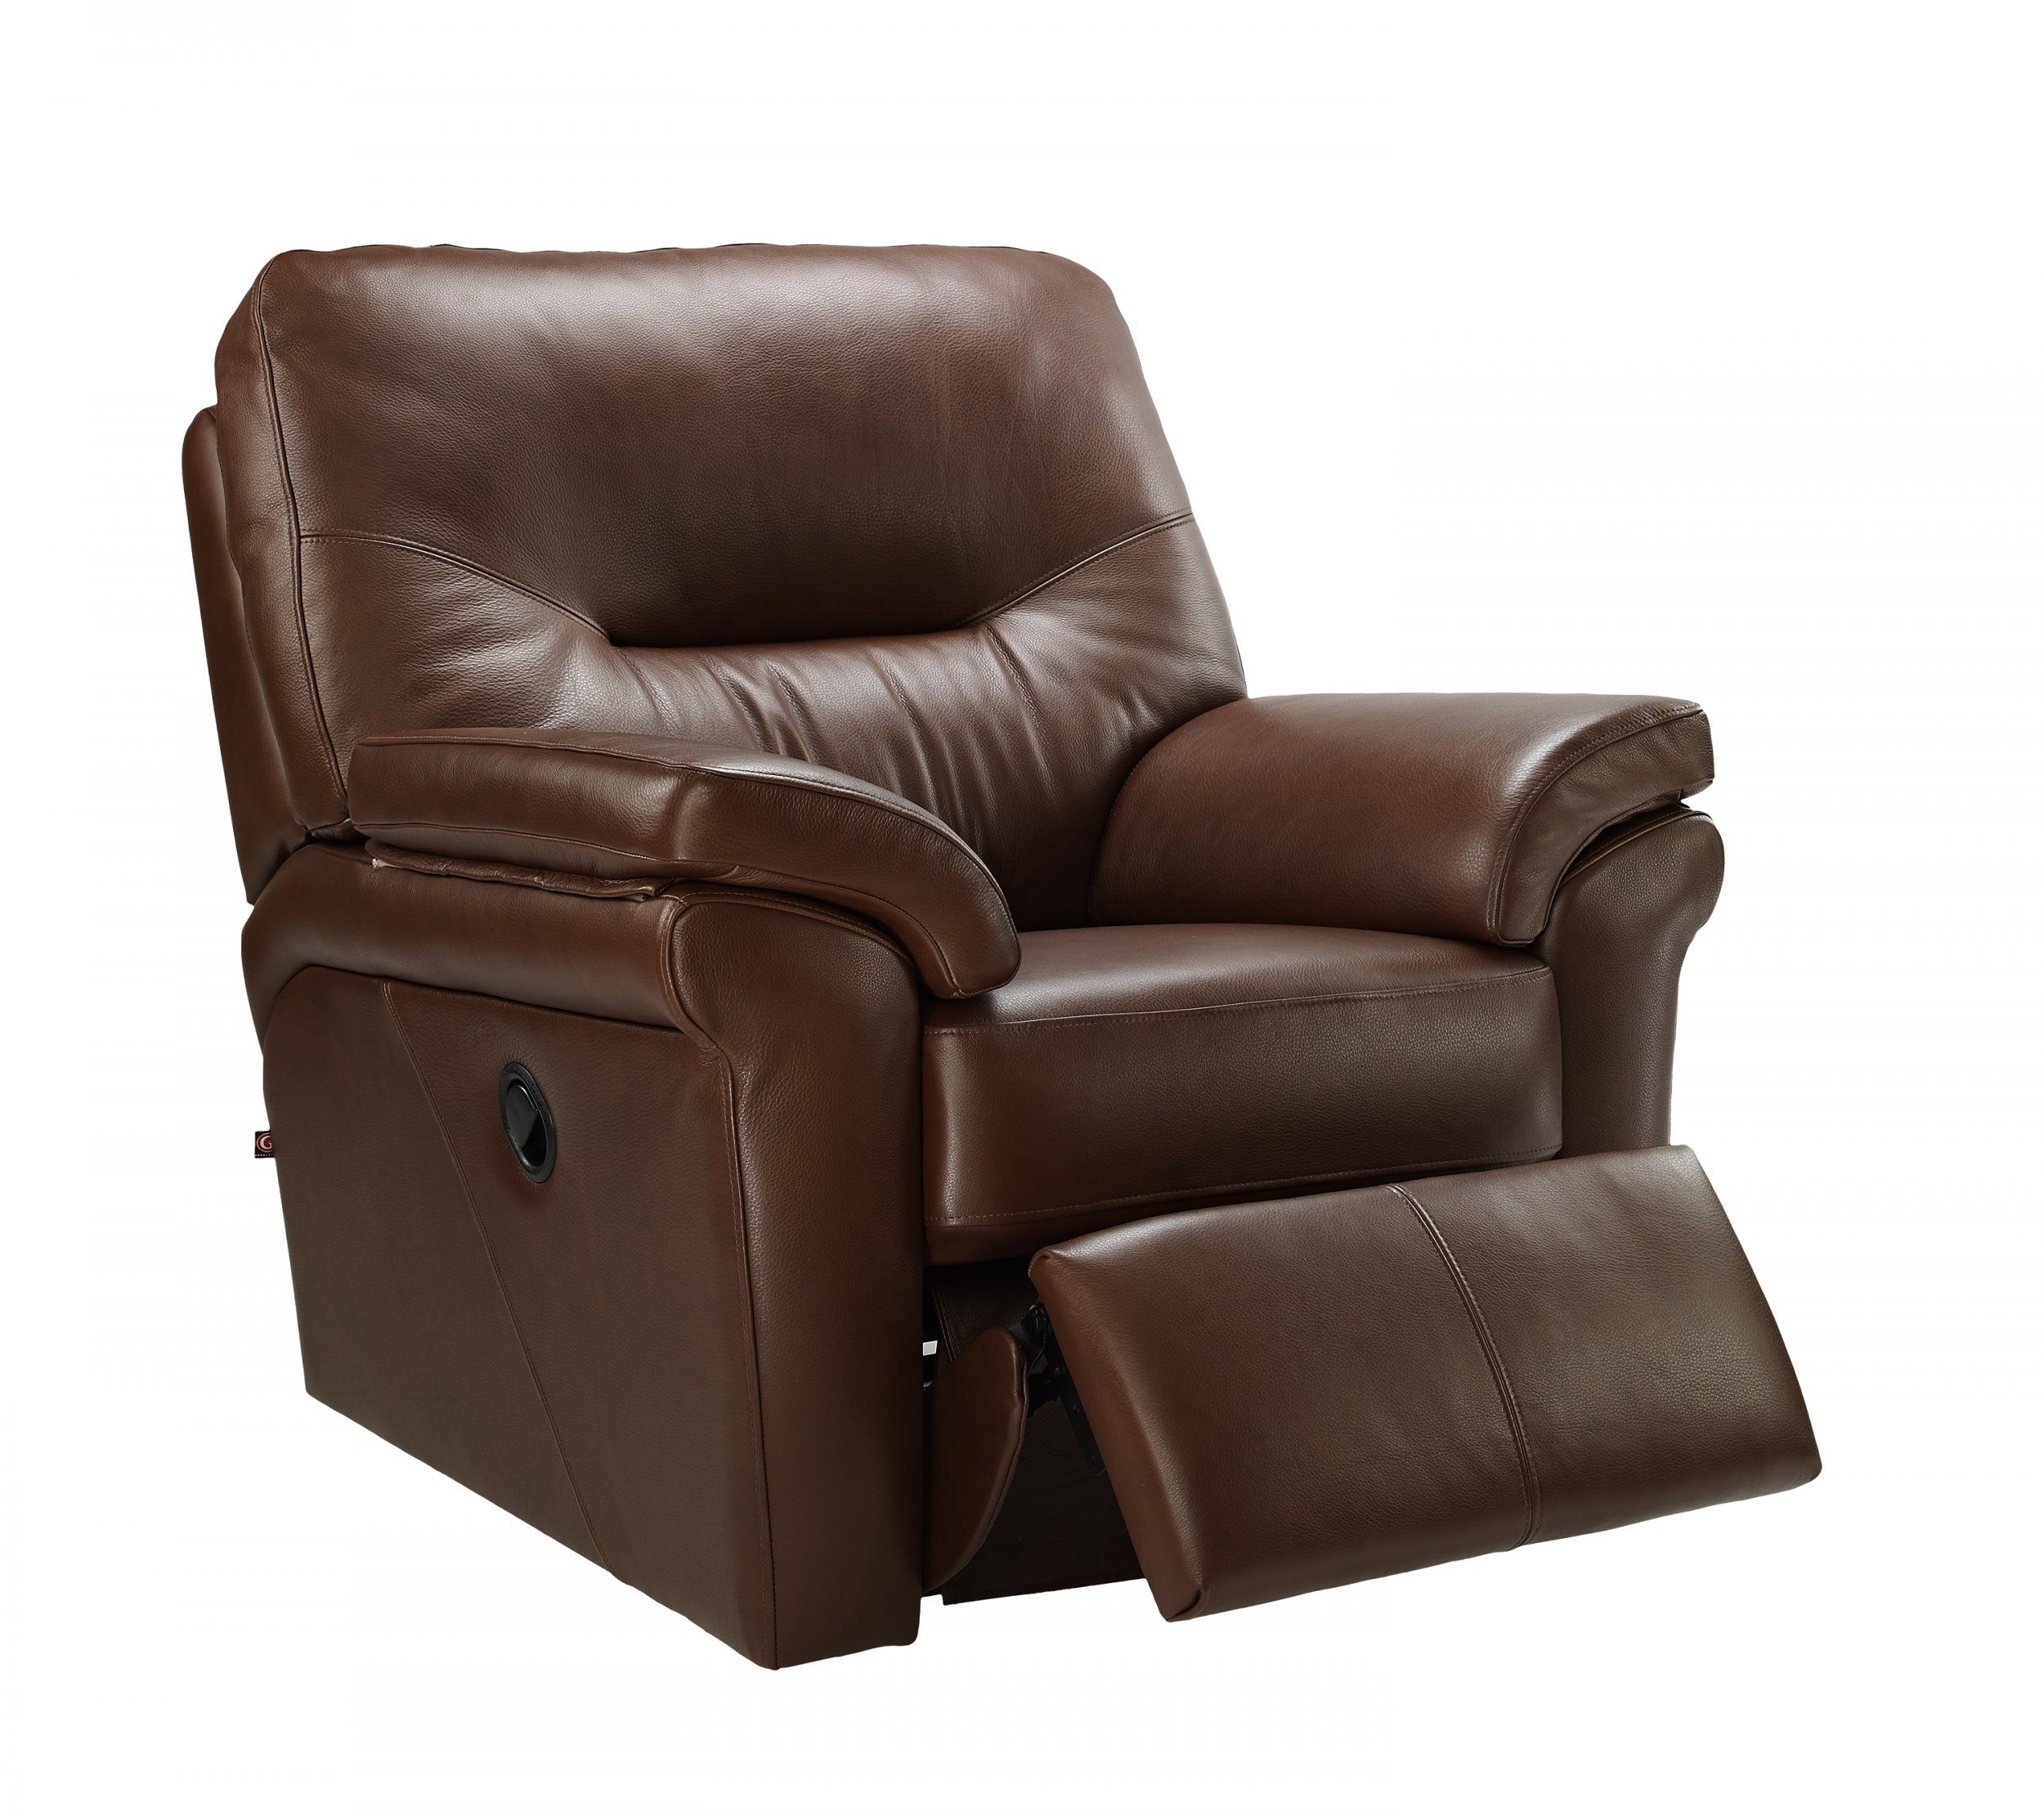 leather recliner chairs modern uk cheap dining room tables and washington manual chair eyres furniture